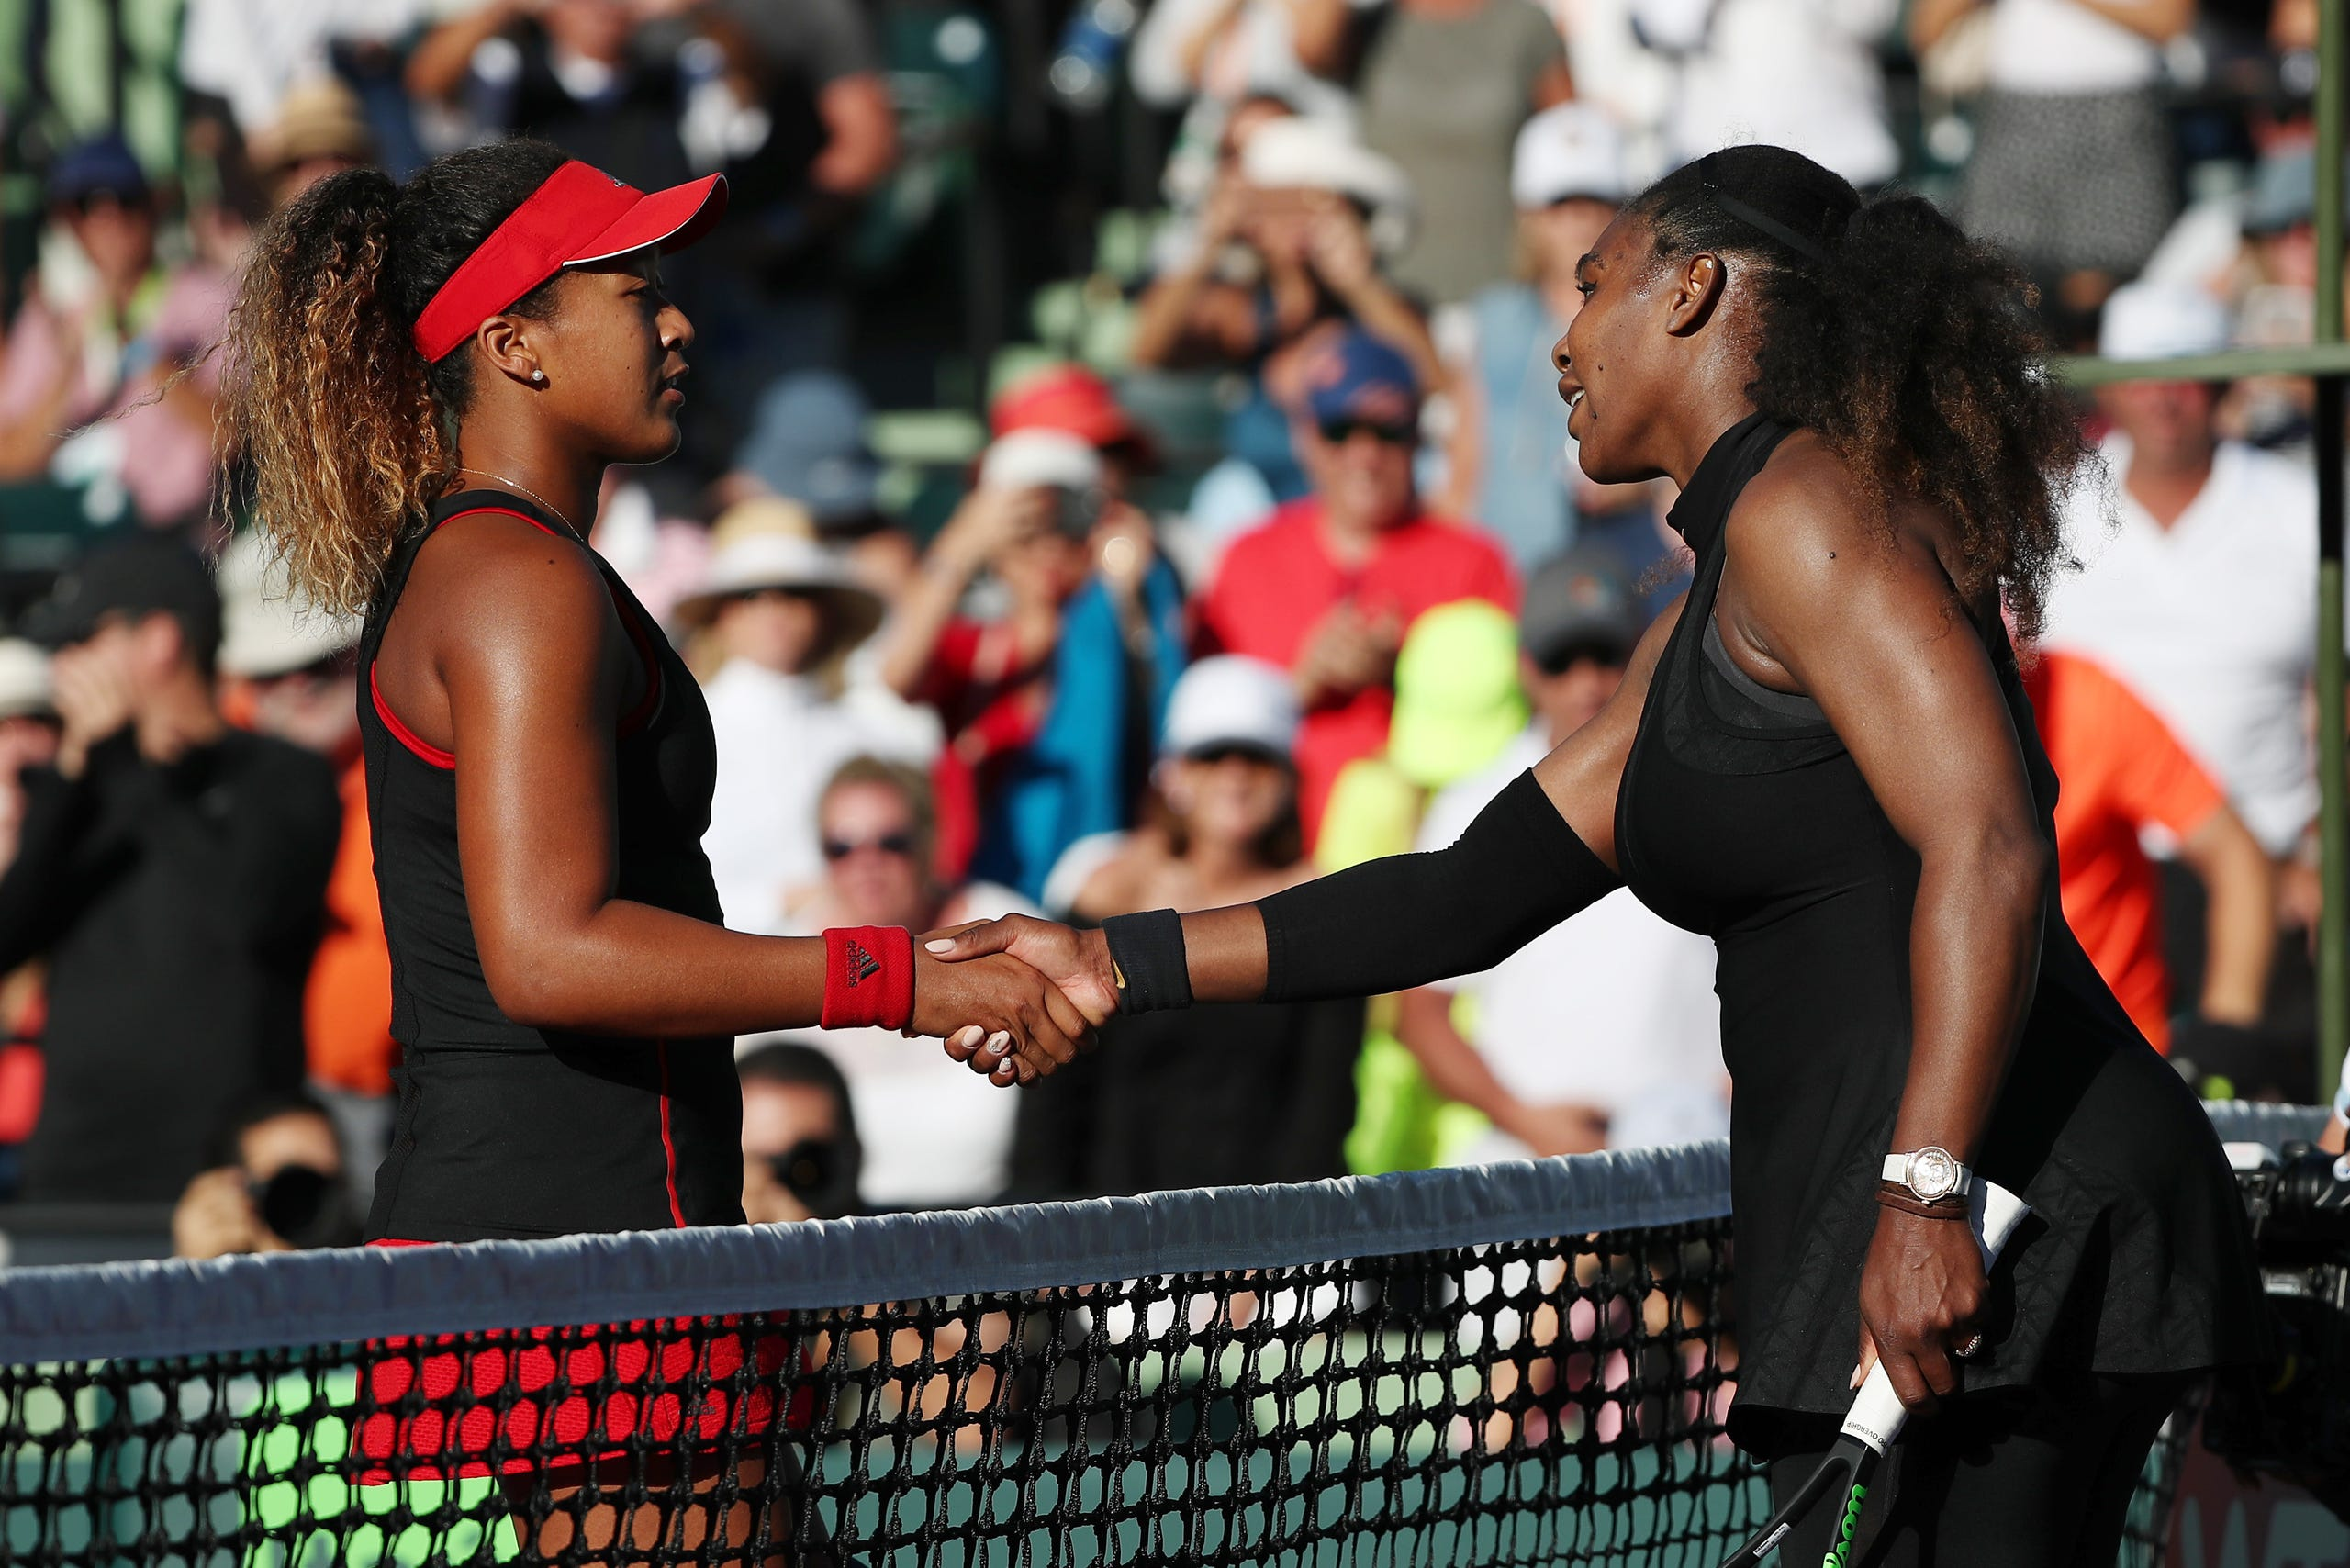 Naomi Osaka shakes hands with Serena Williams after their match on day two of the Miami Open at Tennis Center at Crandon Park on March 21, 2018. Osaka won 6-3, 6-2.